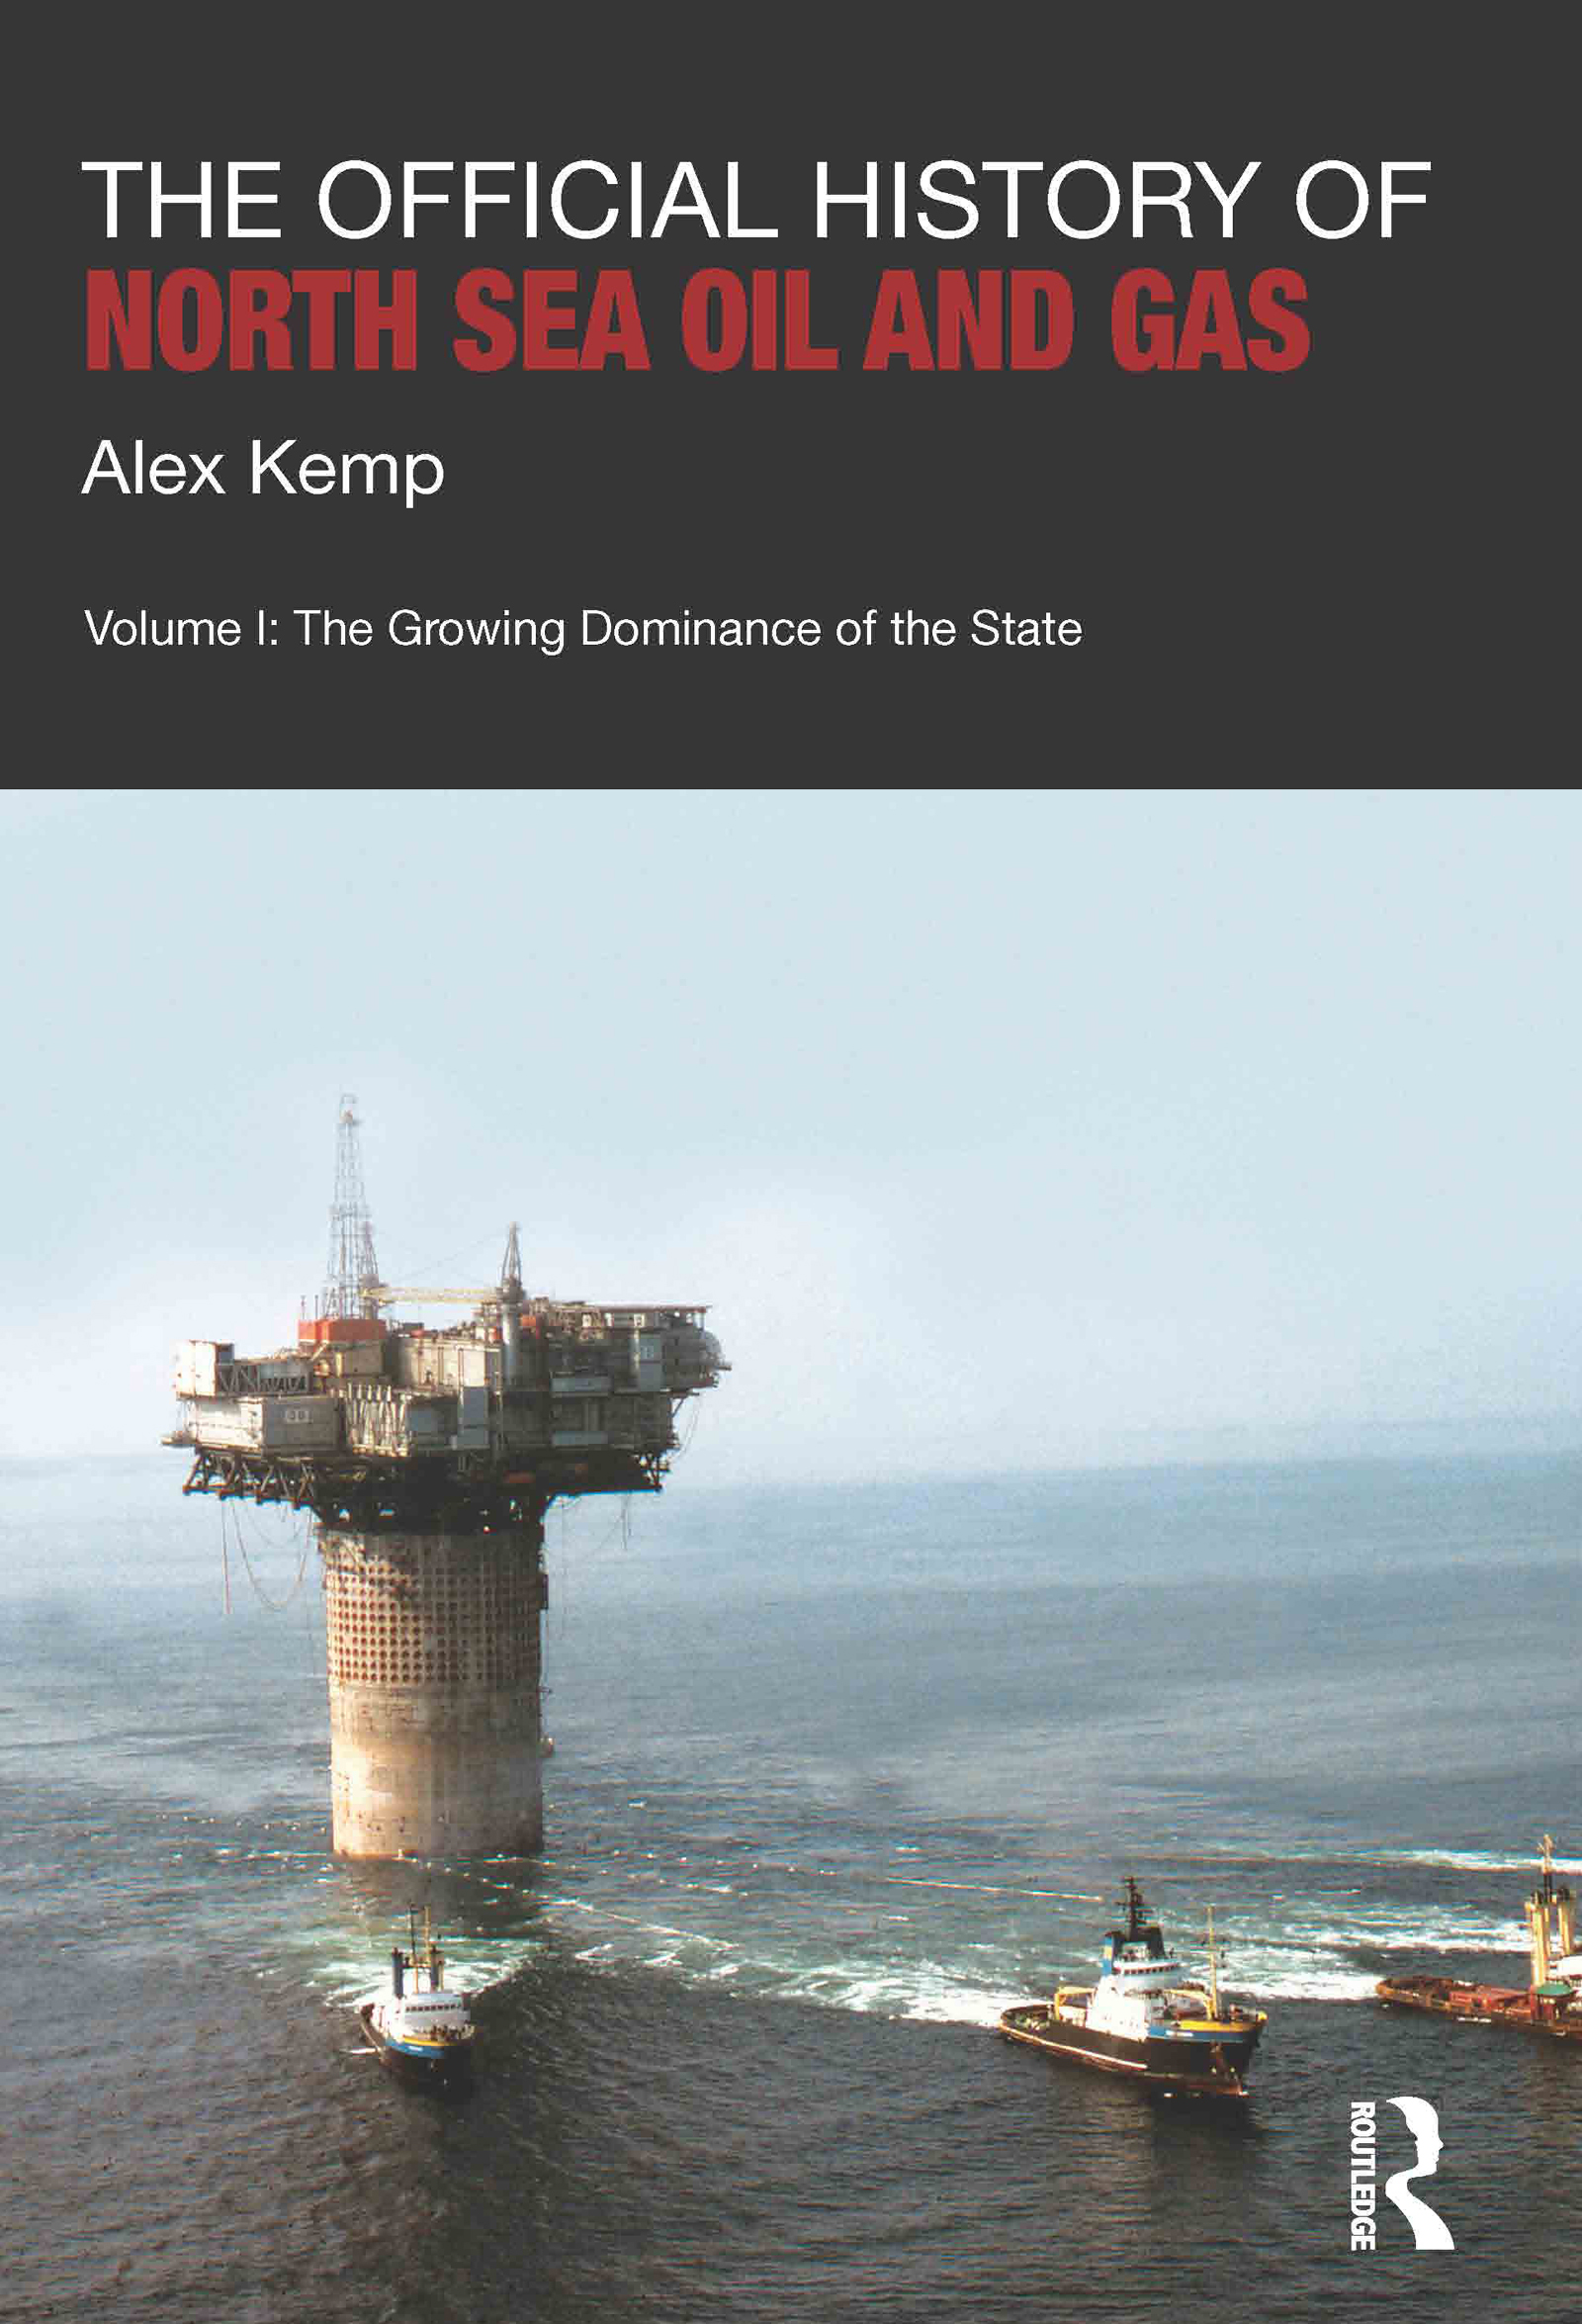 The Official History of North Sea Oil and Gas: Vol. I: The Growing Dominance of the State (Hardback) book cover